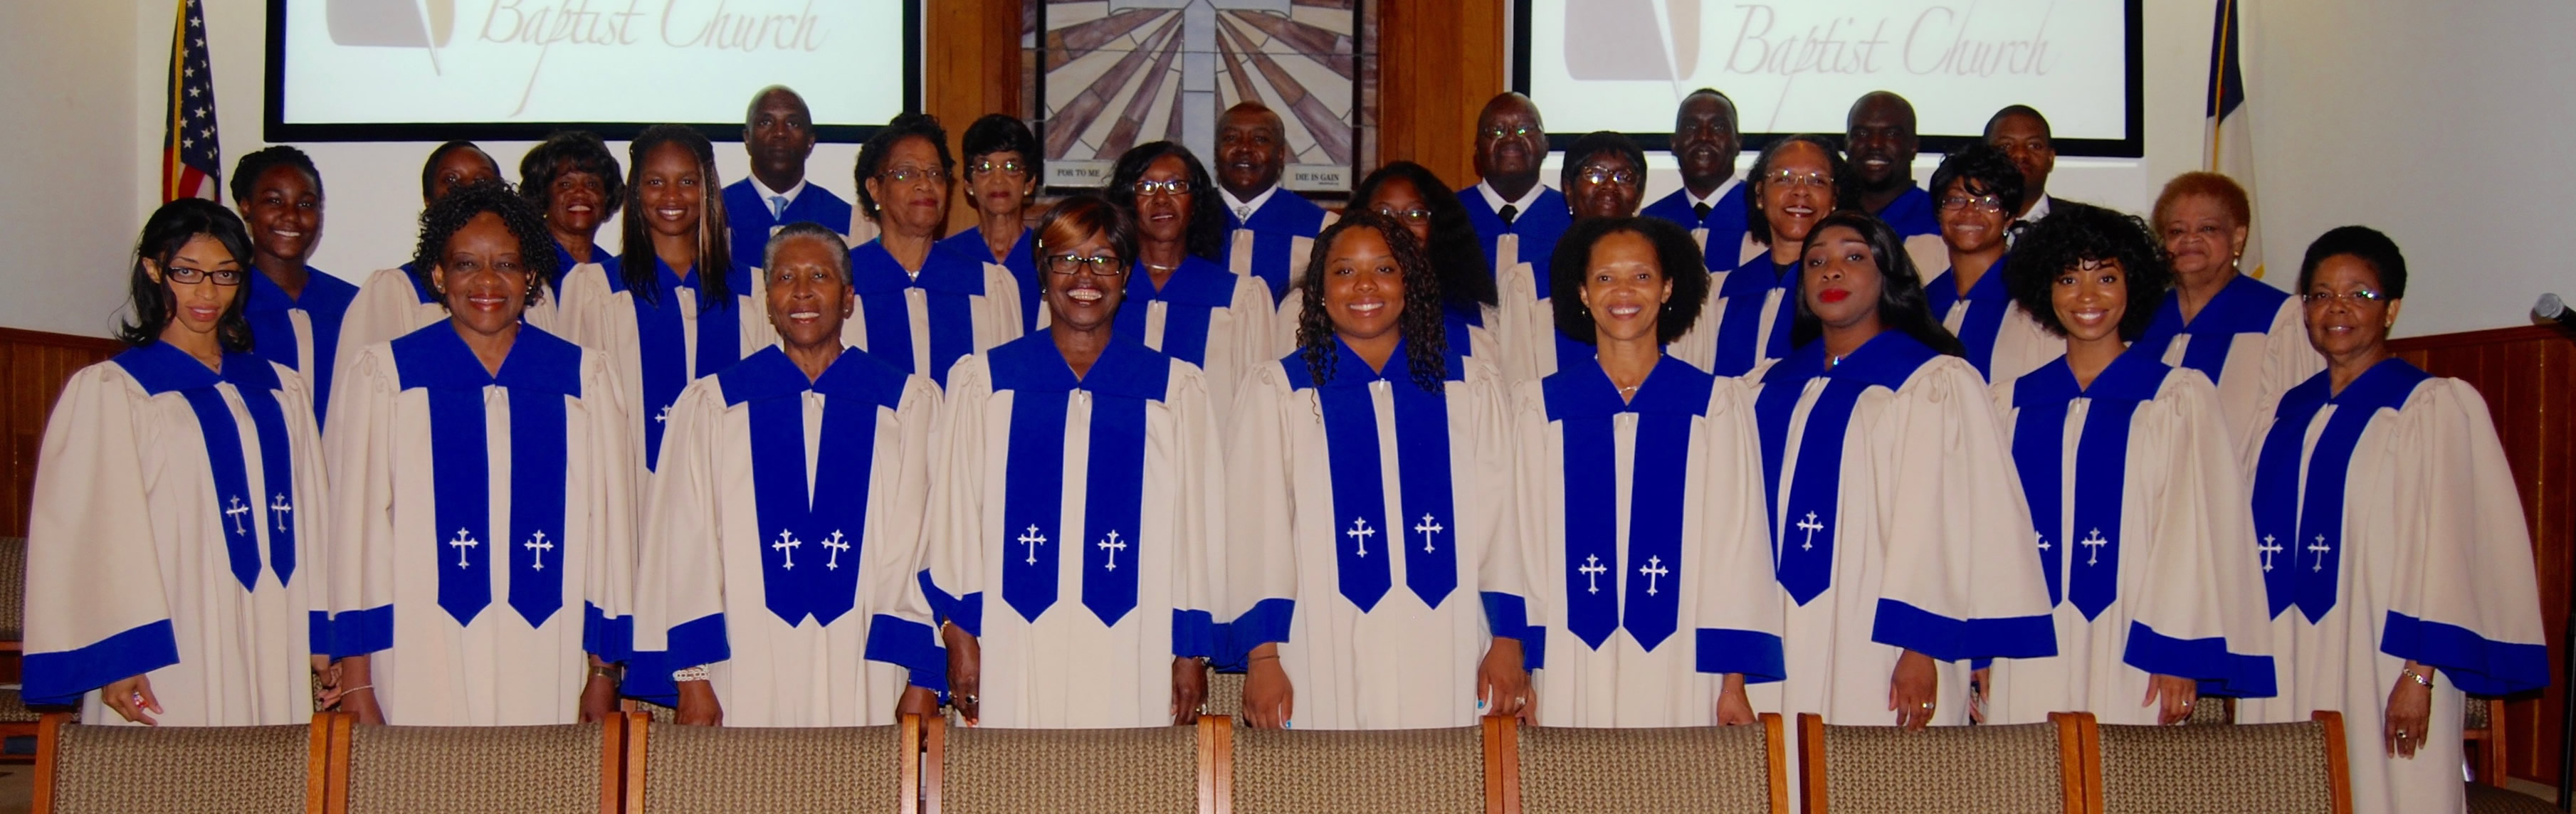 Choir-new robes_cropped_2